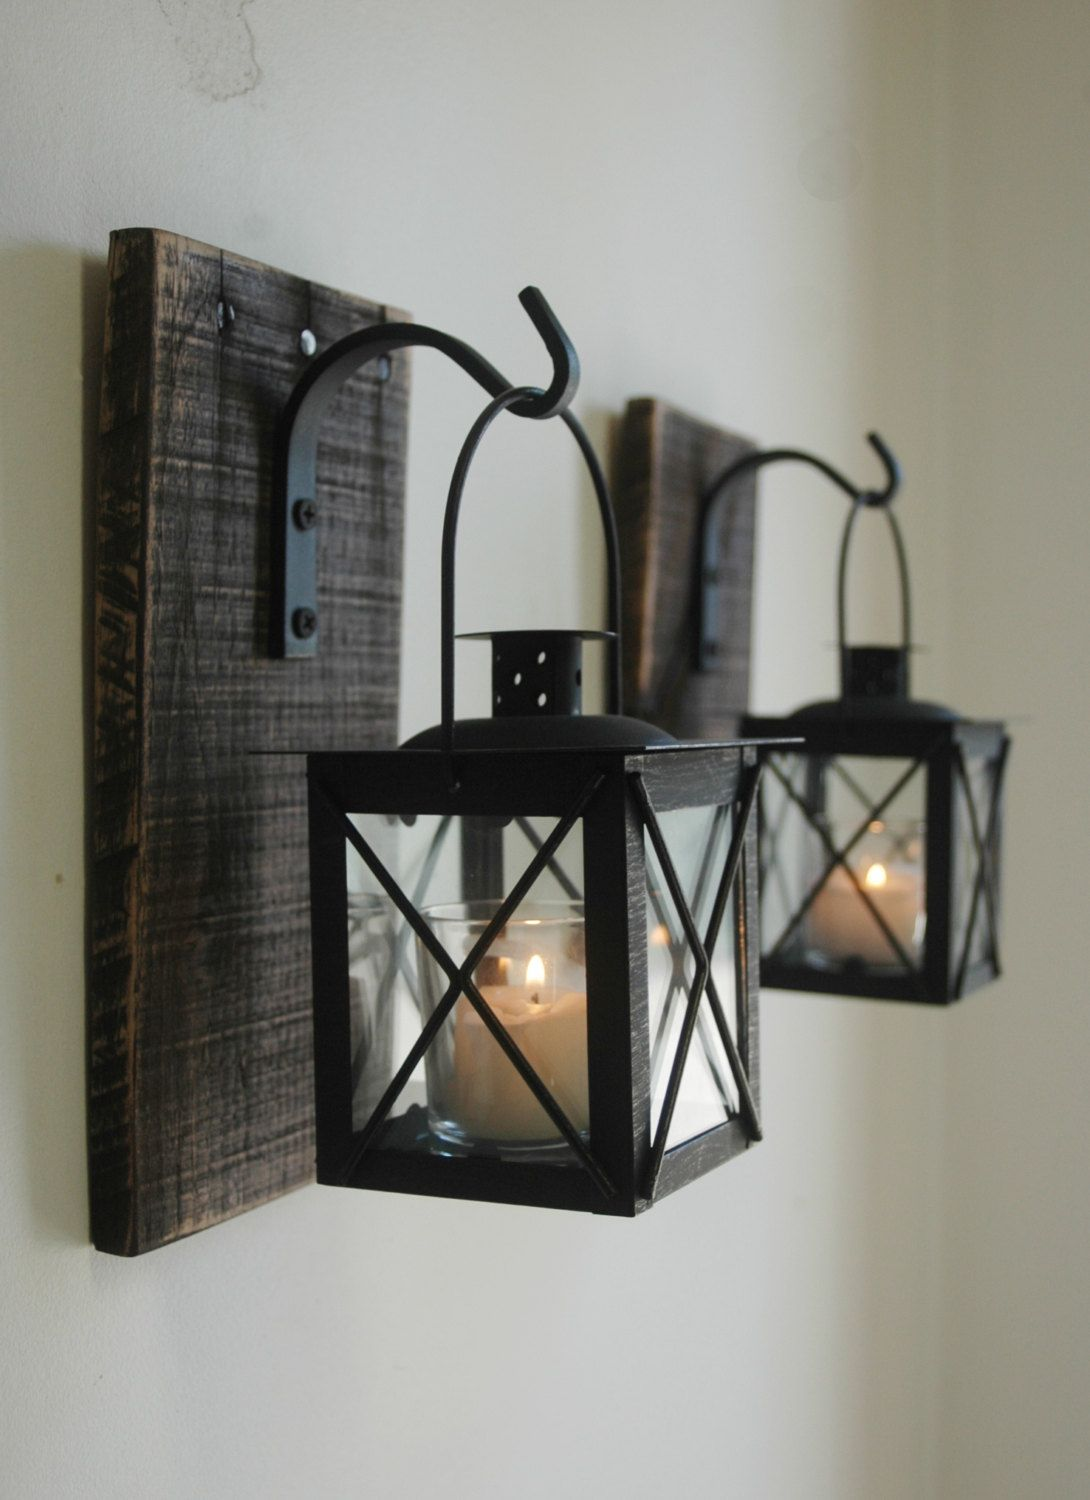 Black lantern pair with wrought iron hooks on recycled wood